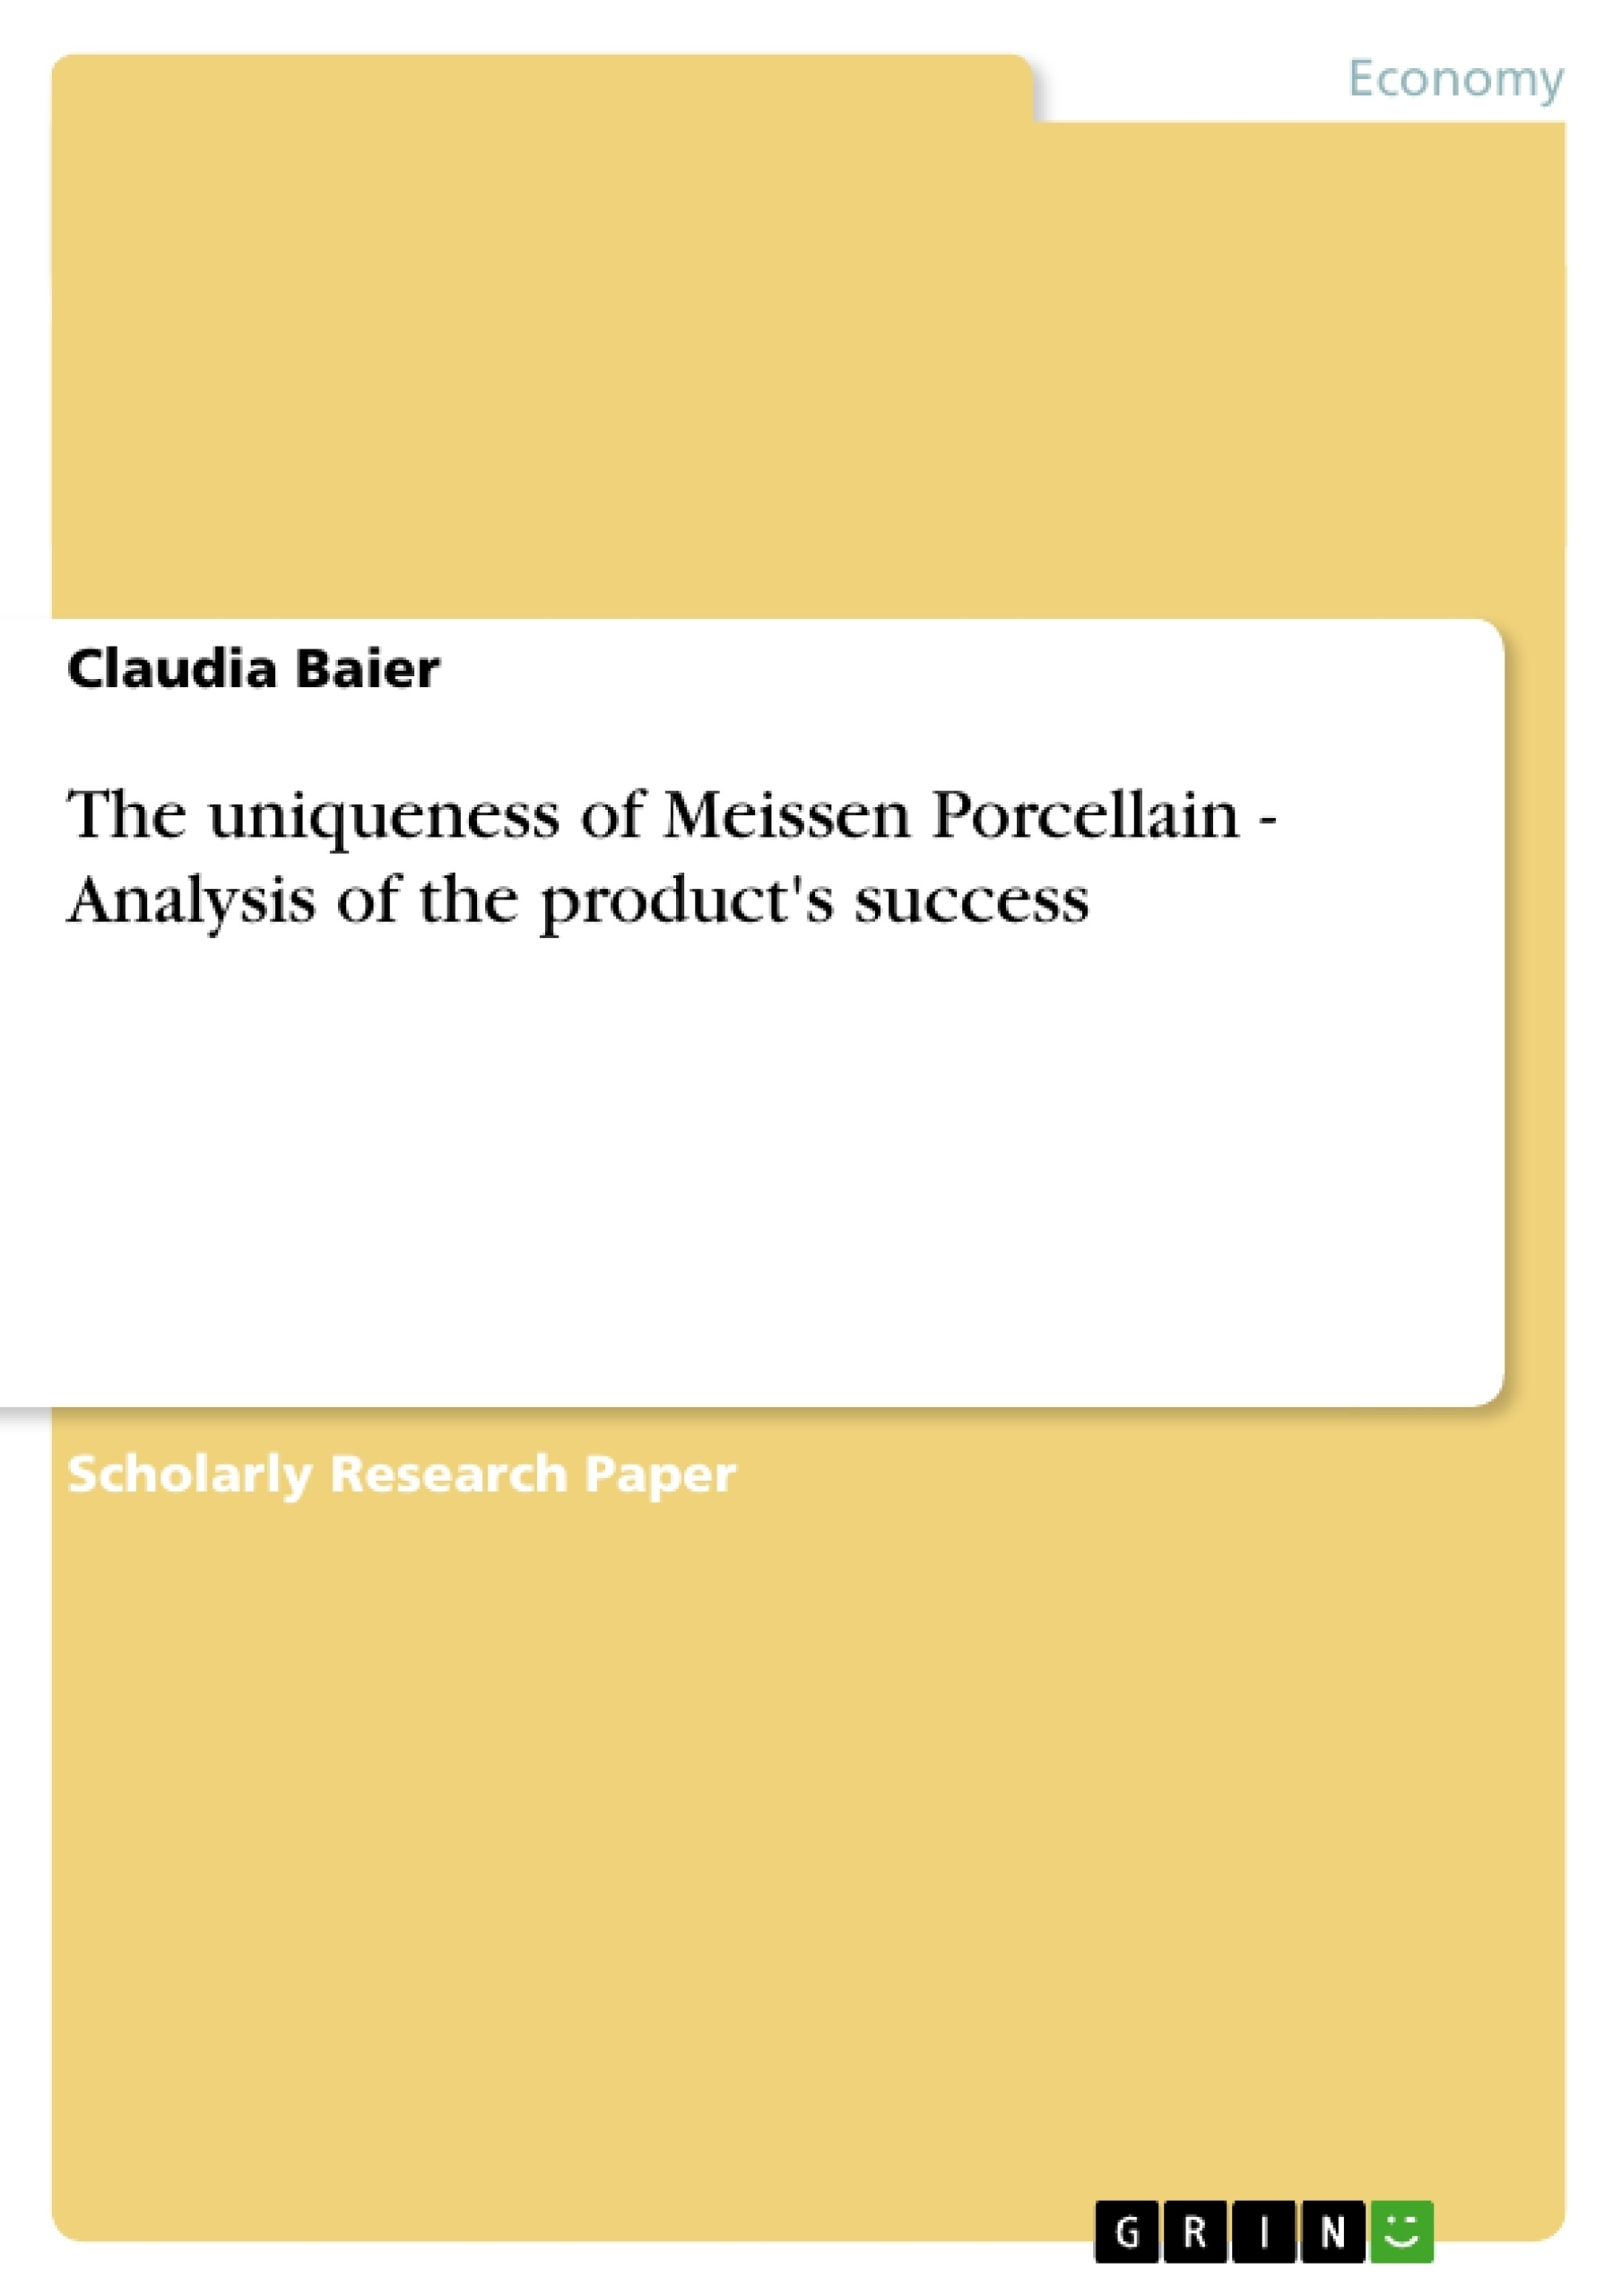 Title: The uniqueness of Meissen Porcellain - Analysis of the product's success